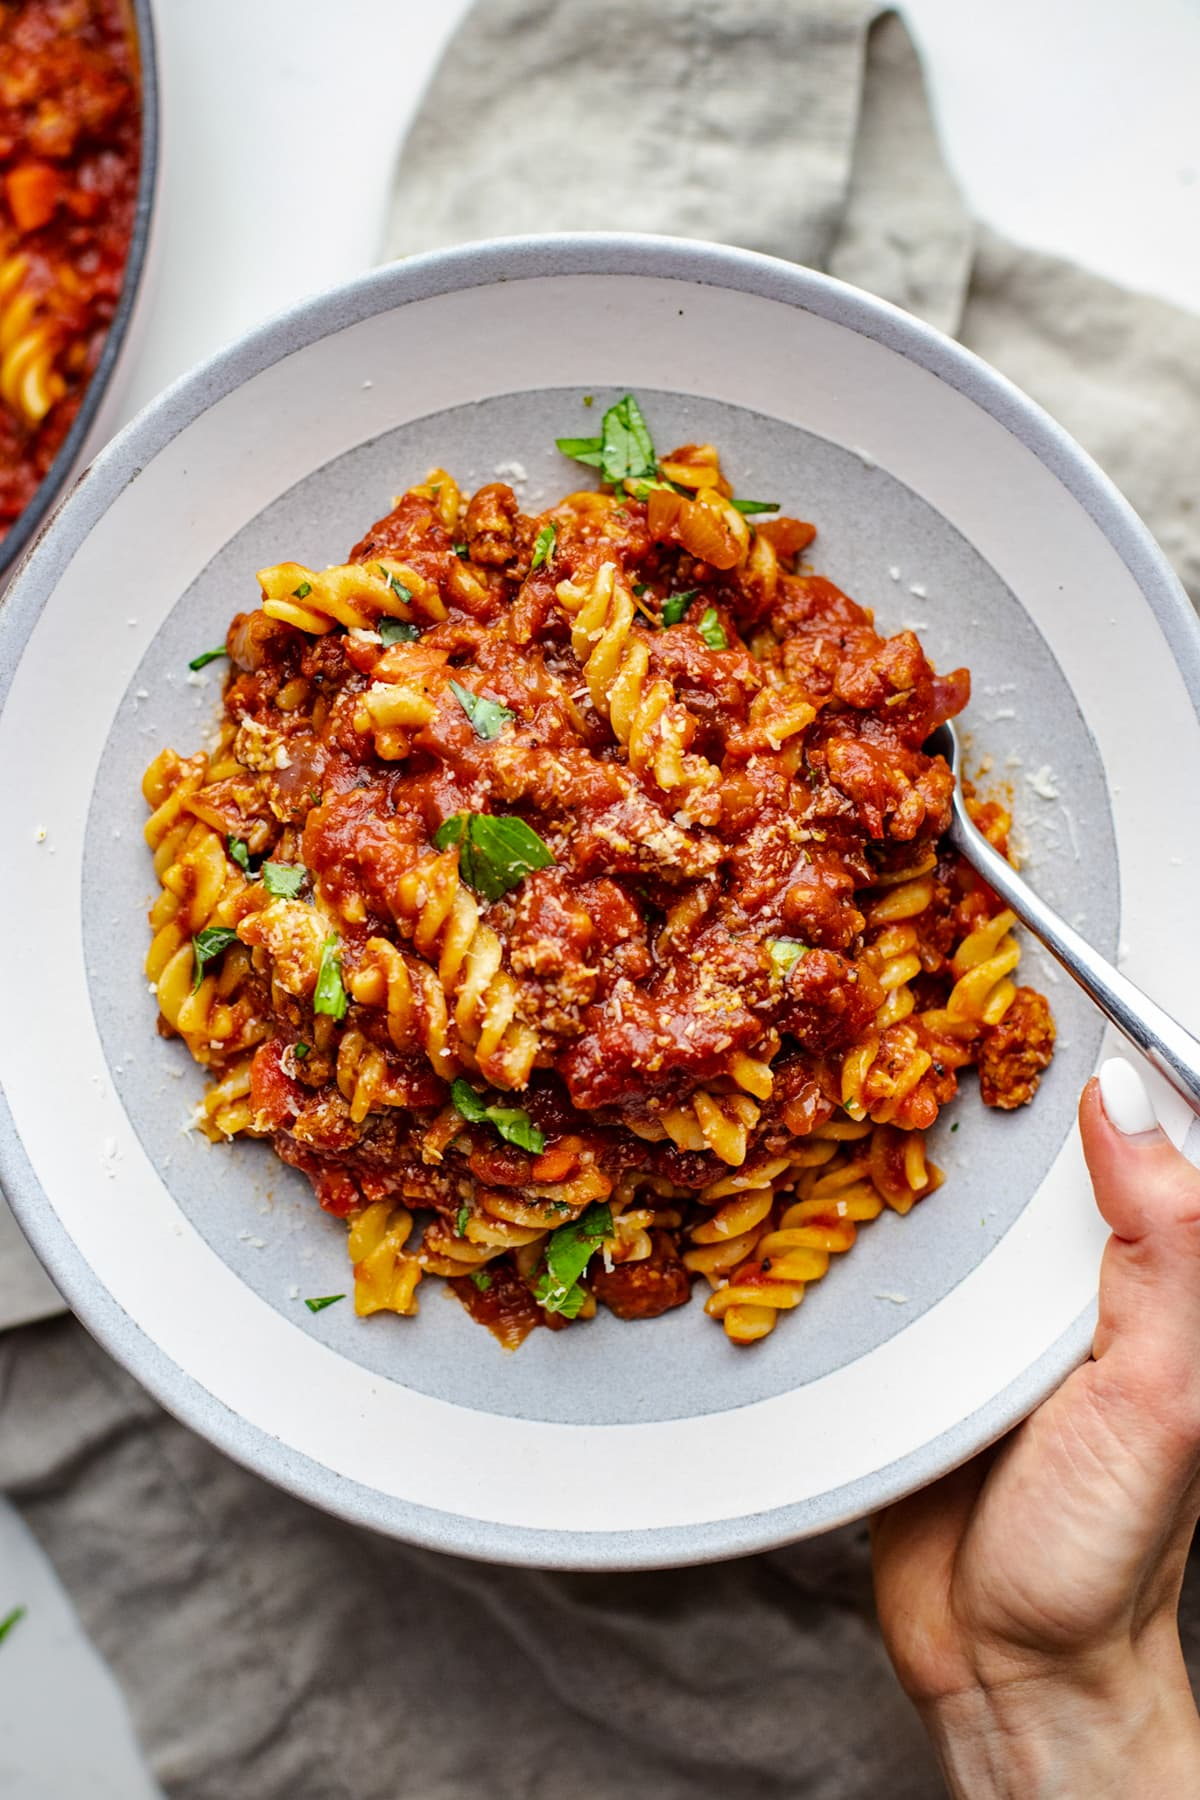 hand holding ceramic bowl with fusilli pasta noodles mixed with red sauce.